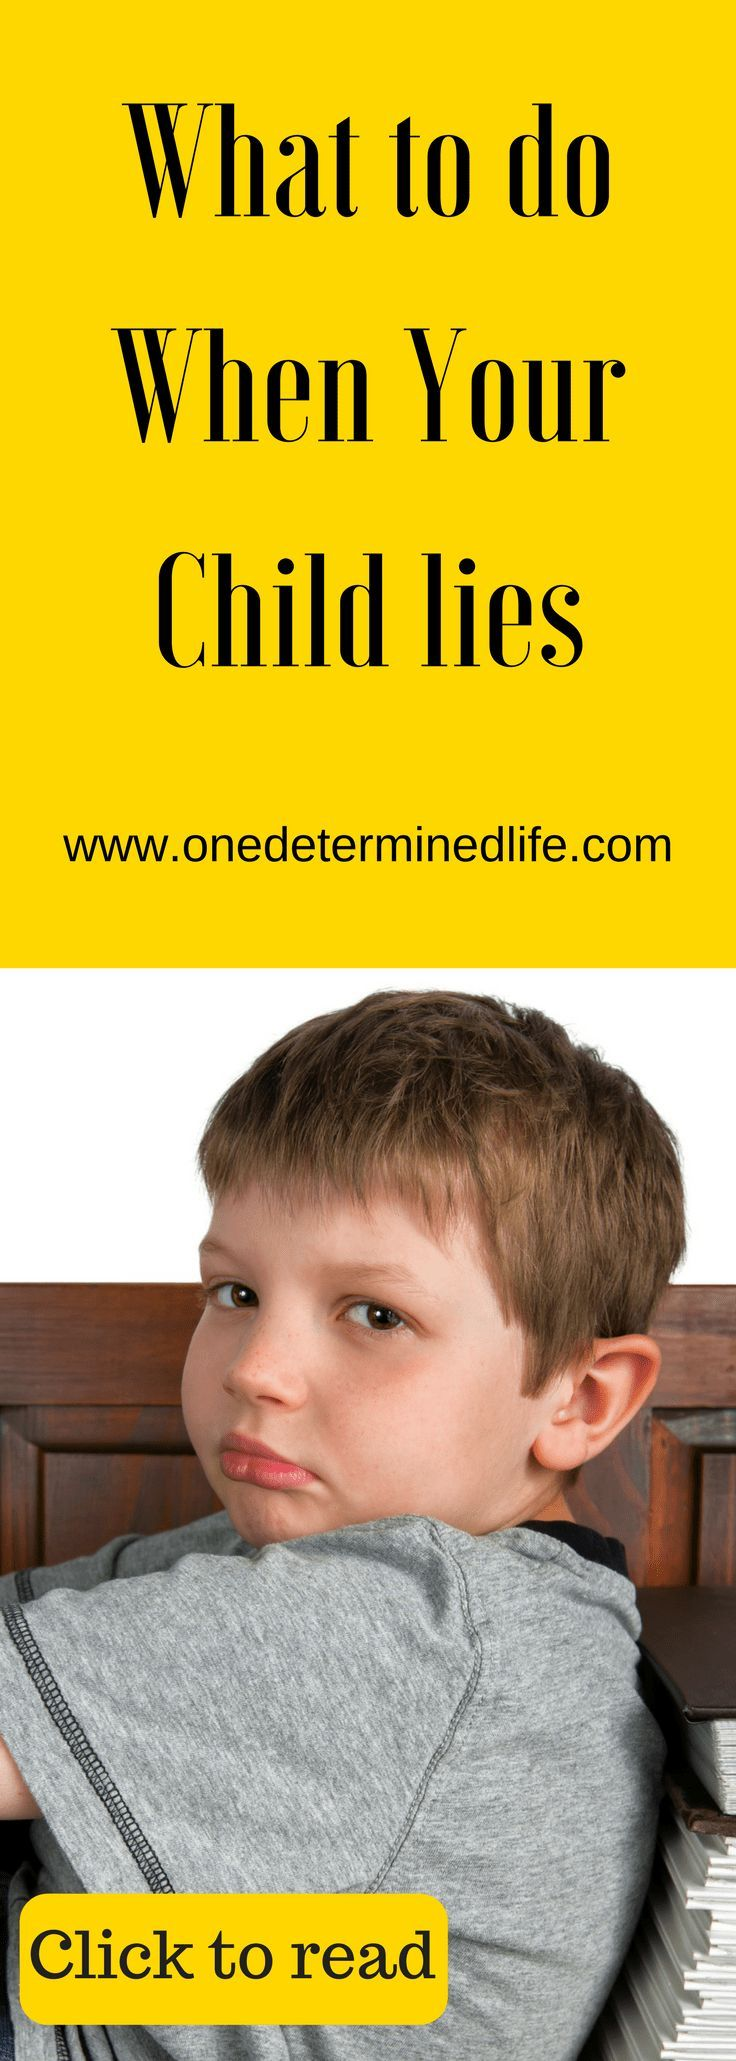 Parenting advice, what to do when your child lies, how to deal with lying in your children, parenting ADHD